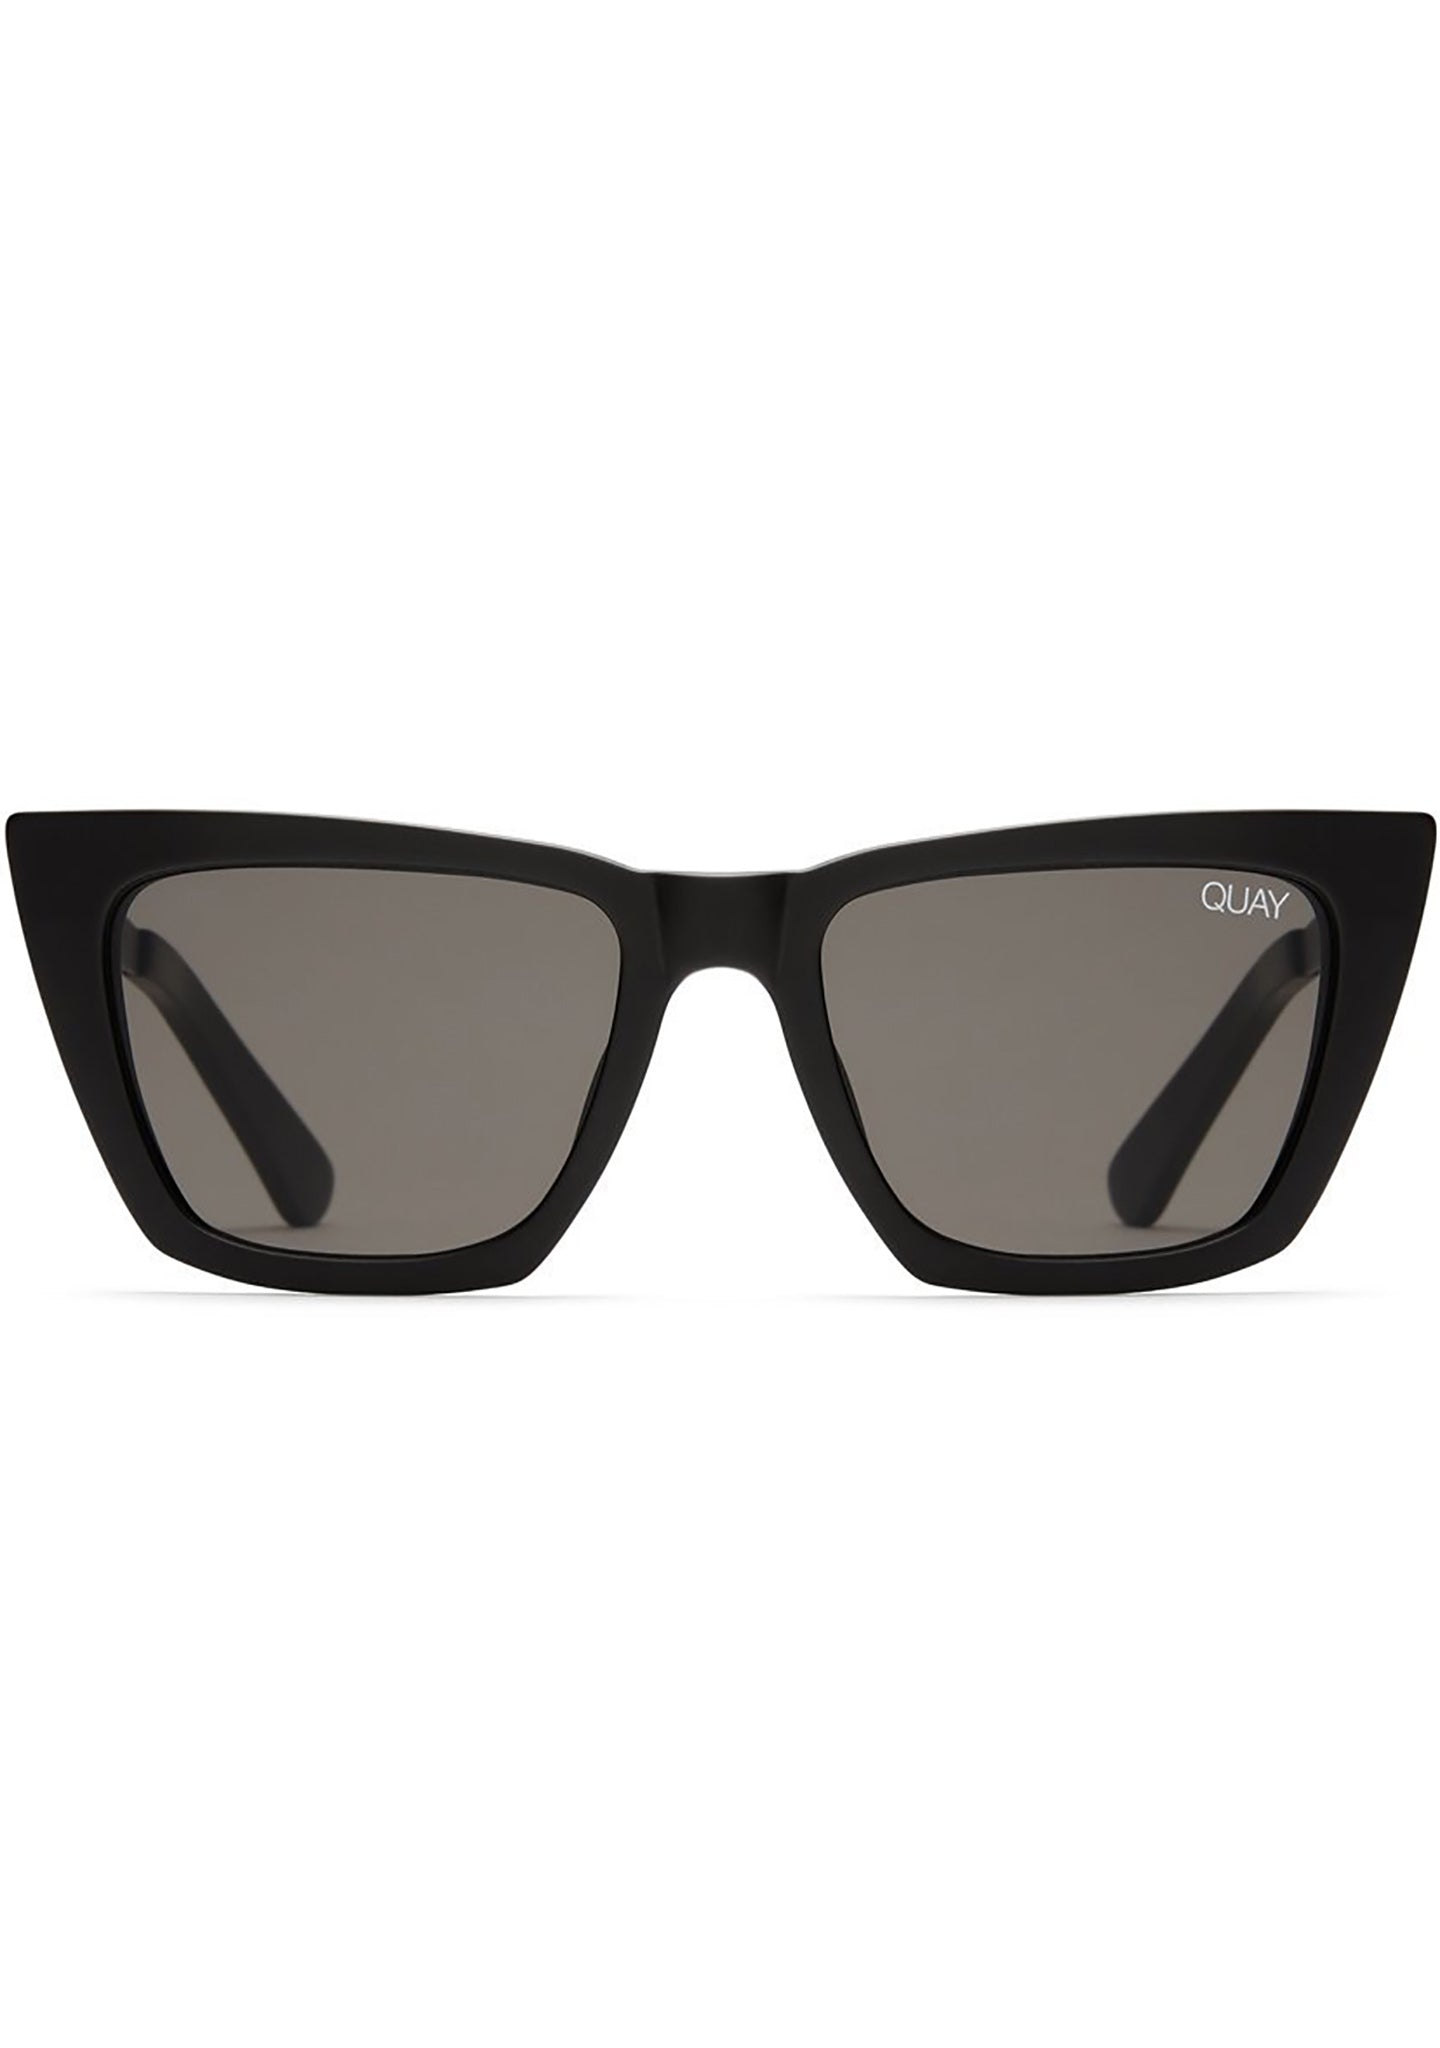 X Desi Perkins Don't @ Me Sunglasses in Black